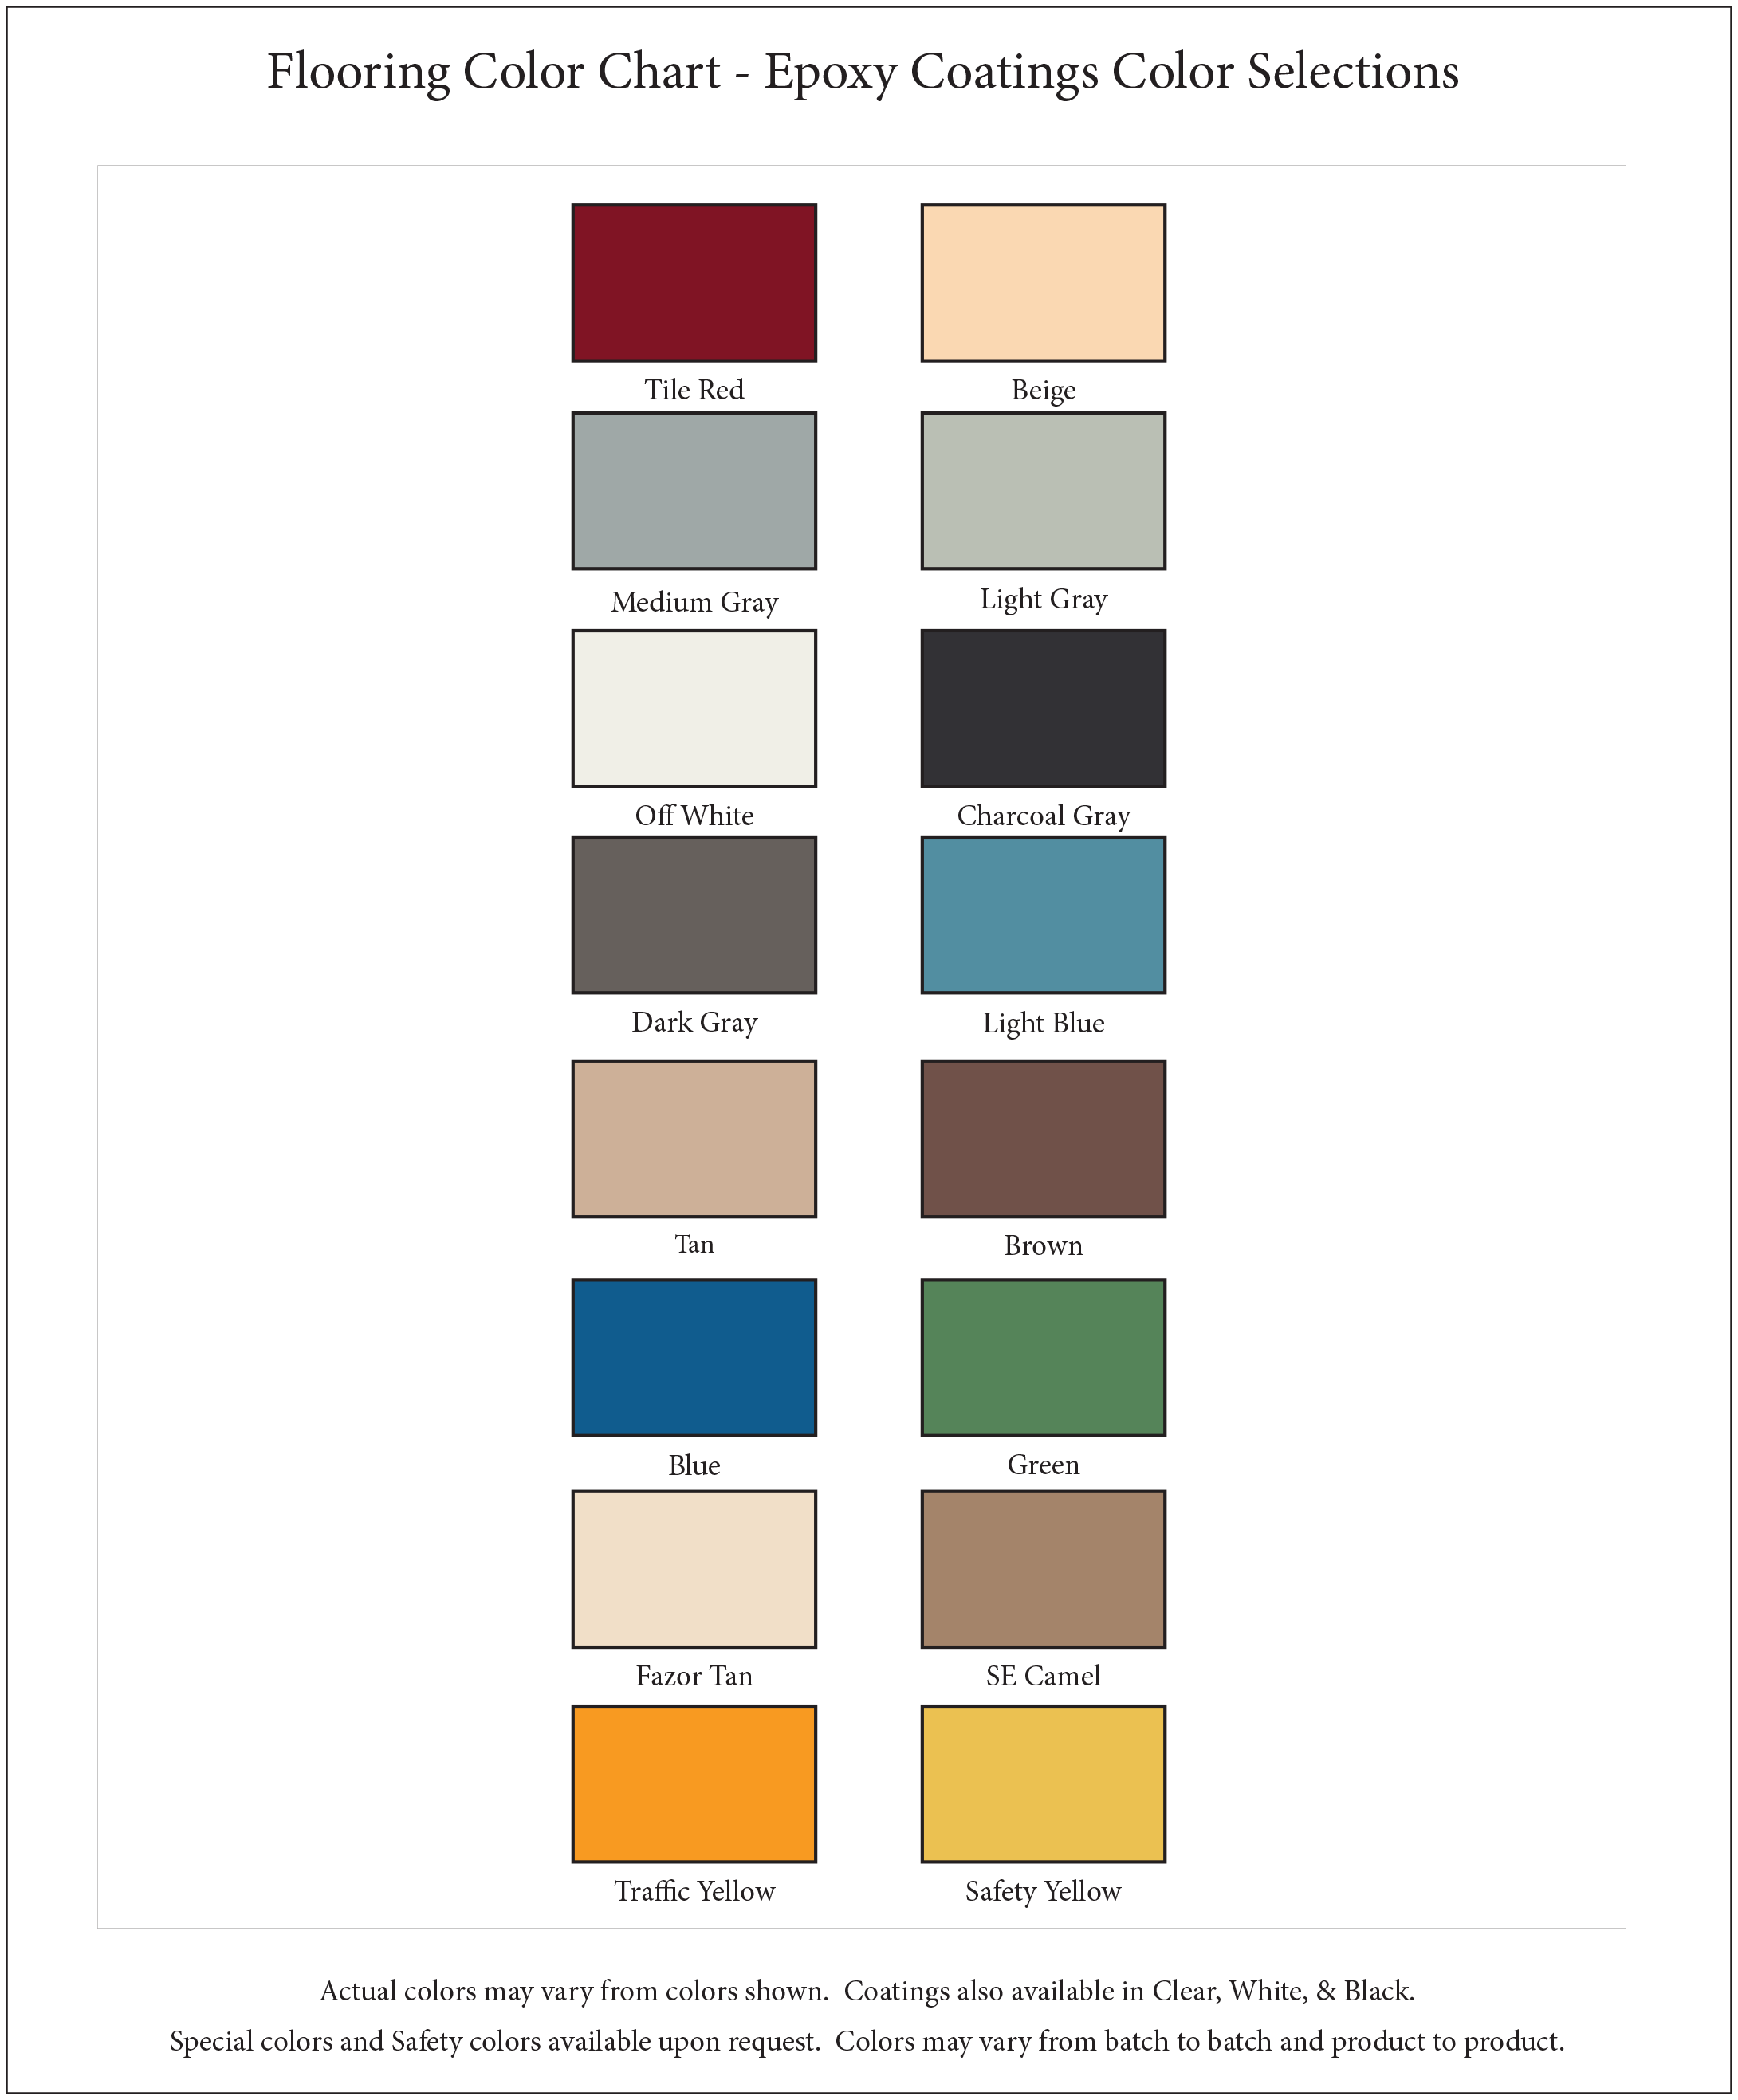 https://www.vseal.com/media/catalog/product/cache/1/image/9df78eab33525d08d6e5fb8d27136e95/i/n/industra-coat_color_chart_2.png